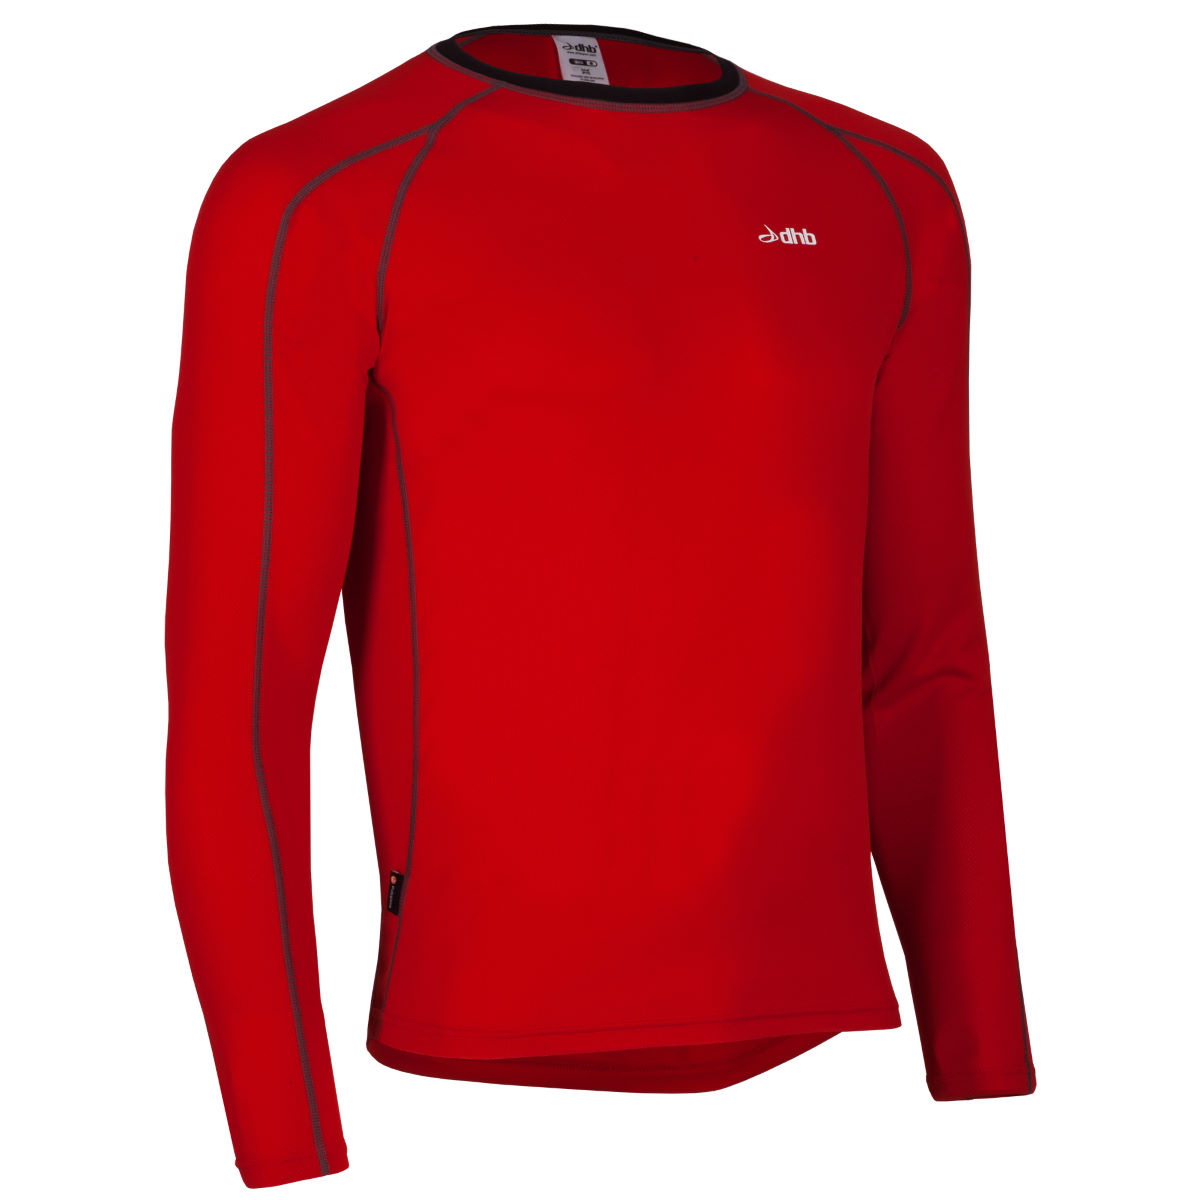 dhb Active Long Sleeve Base Layer